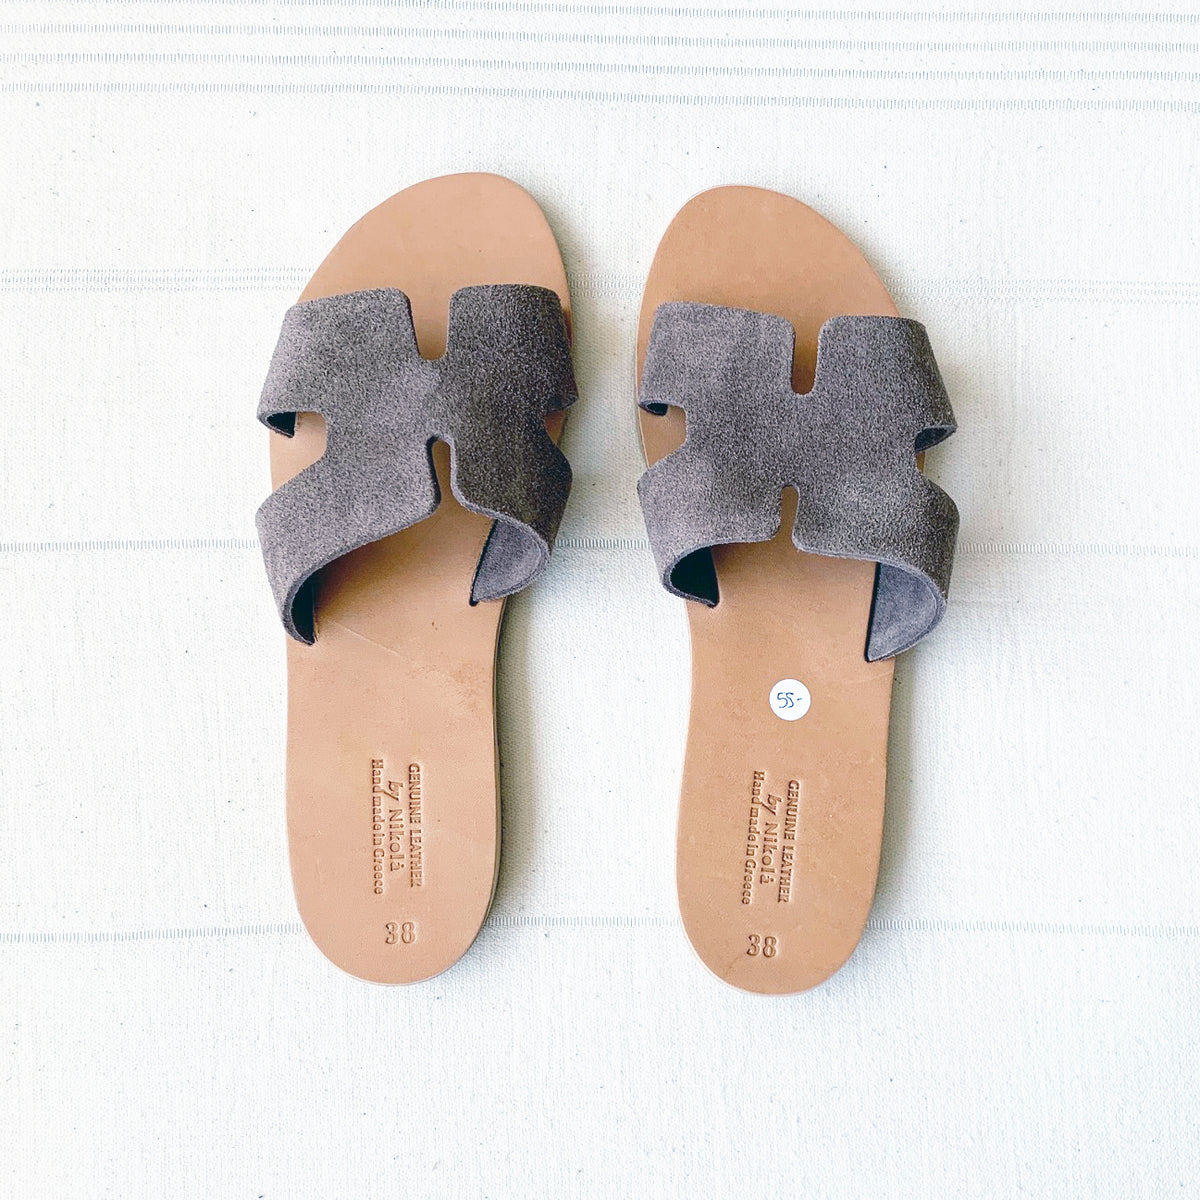 Suede Slip On Sandals - Taupe